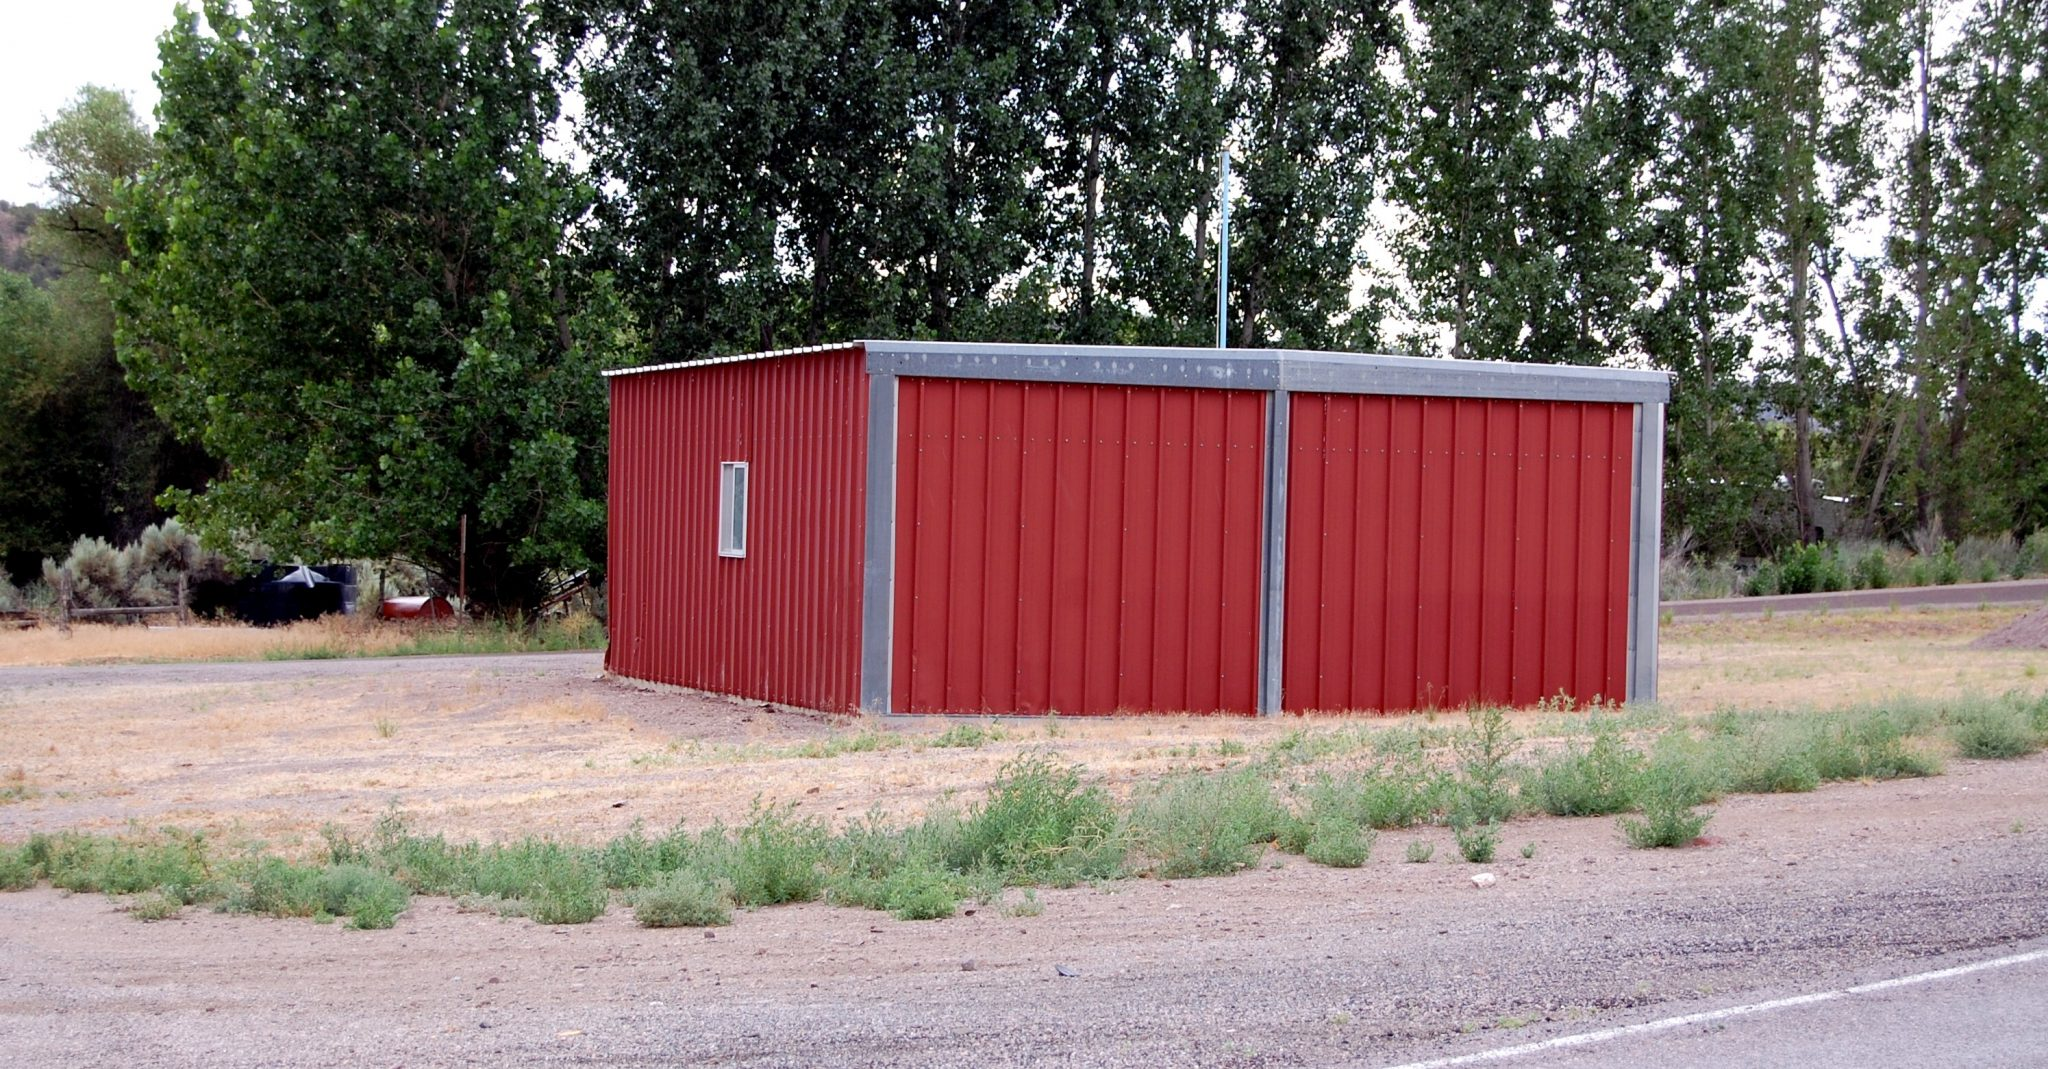 Additional Eagle Valley fire house in the works